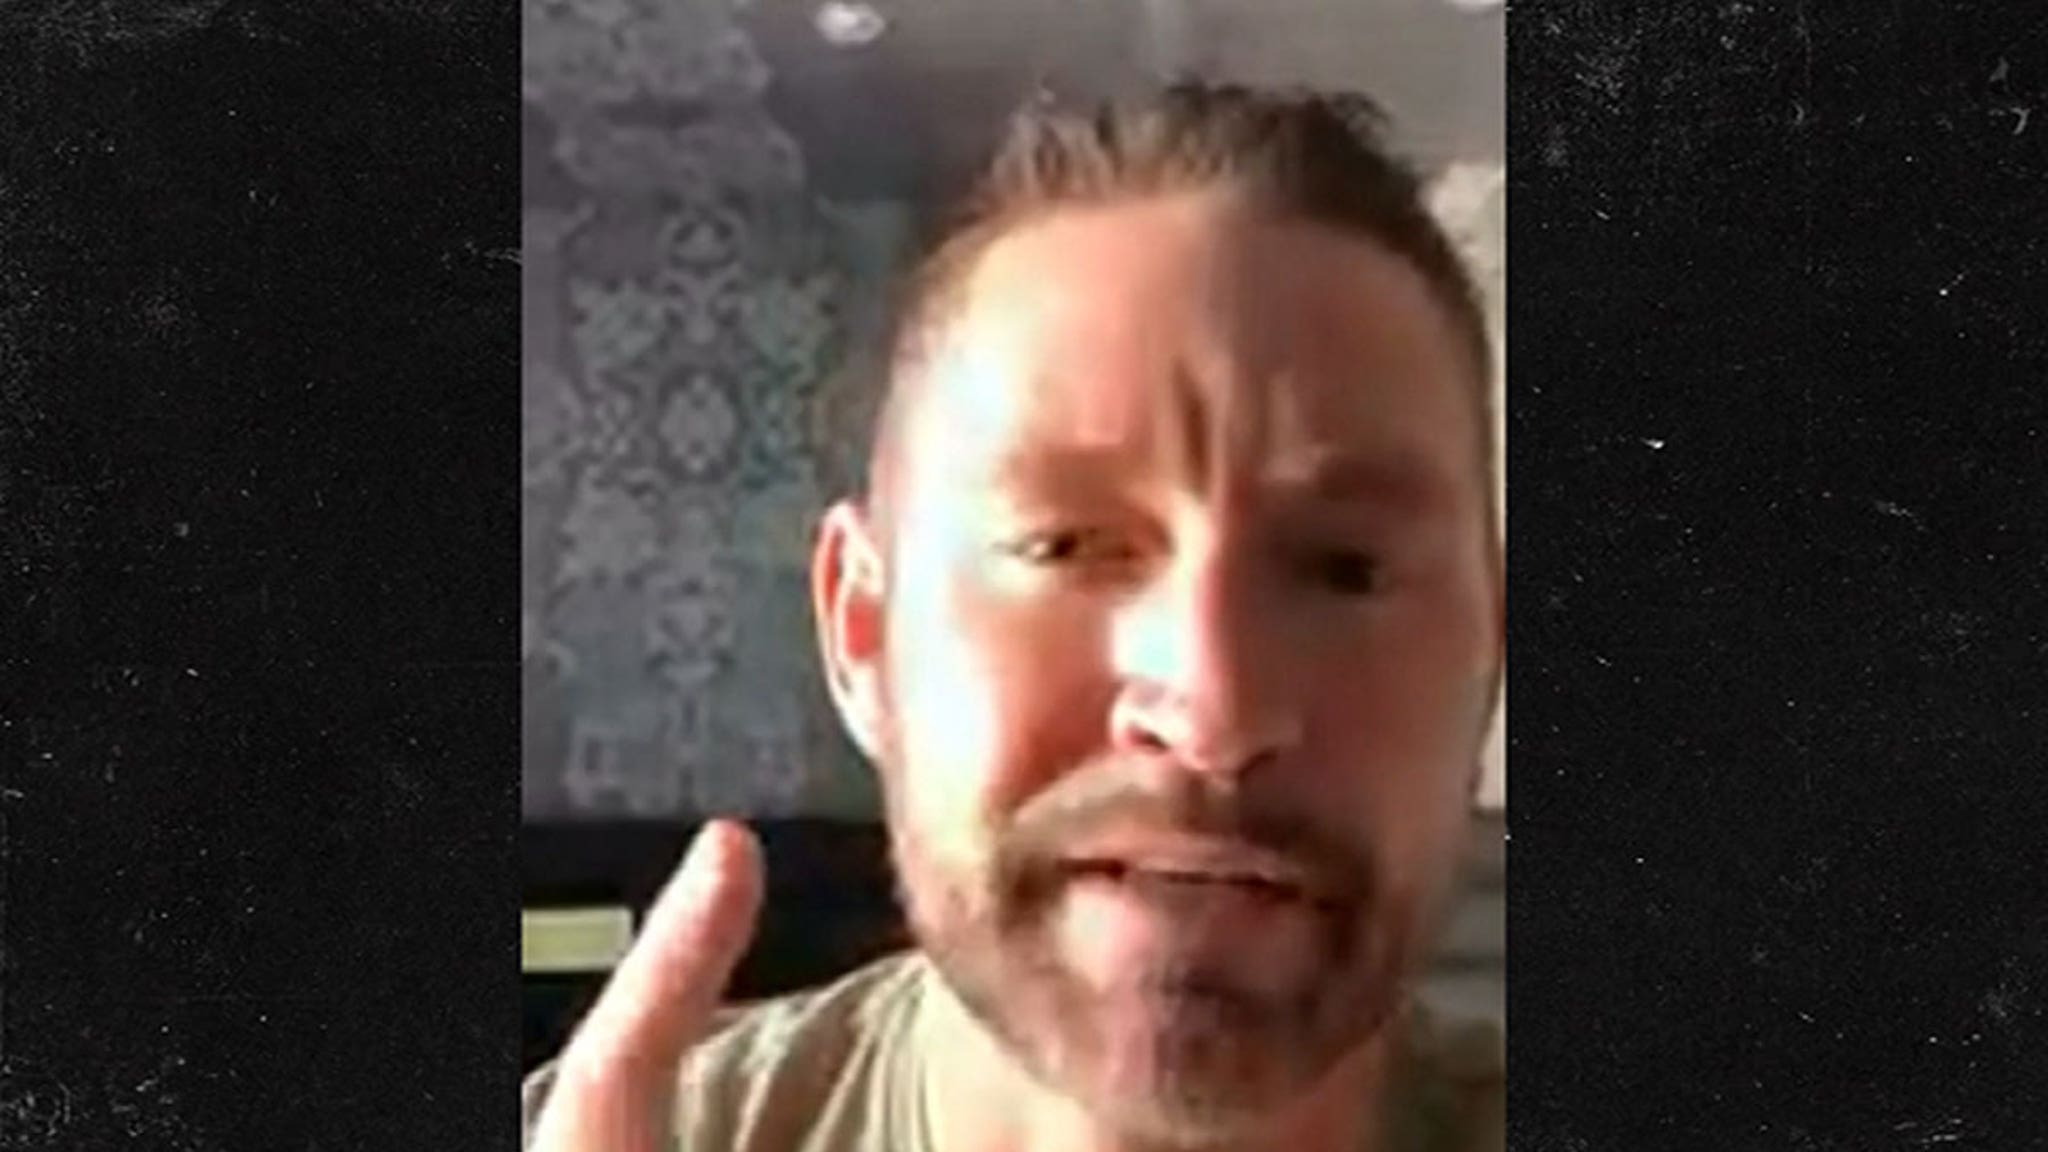 Aubrey Huff Unapologetic Over Tweets Despite Giants Ban, 'This Is Who I Am!'